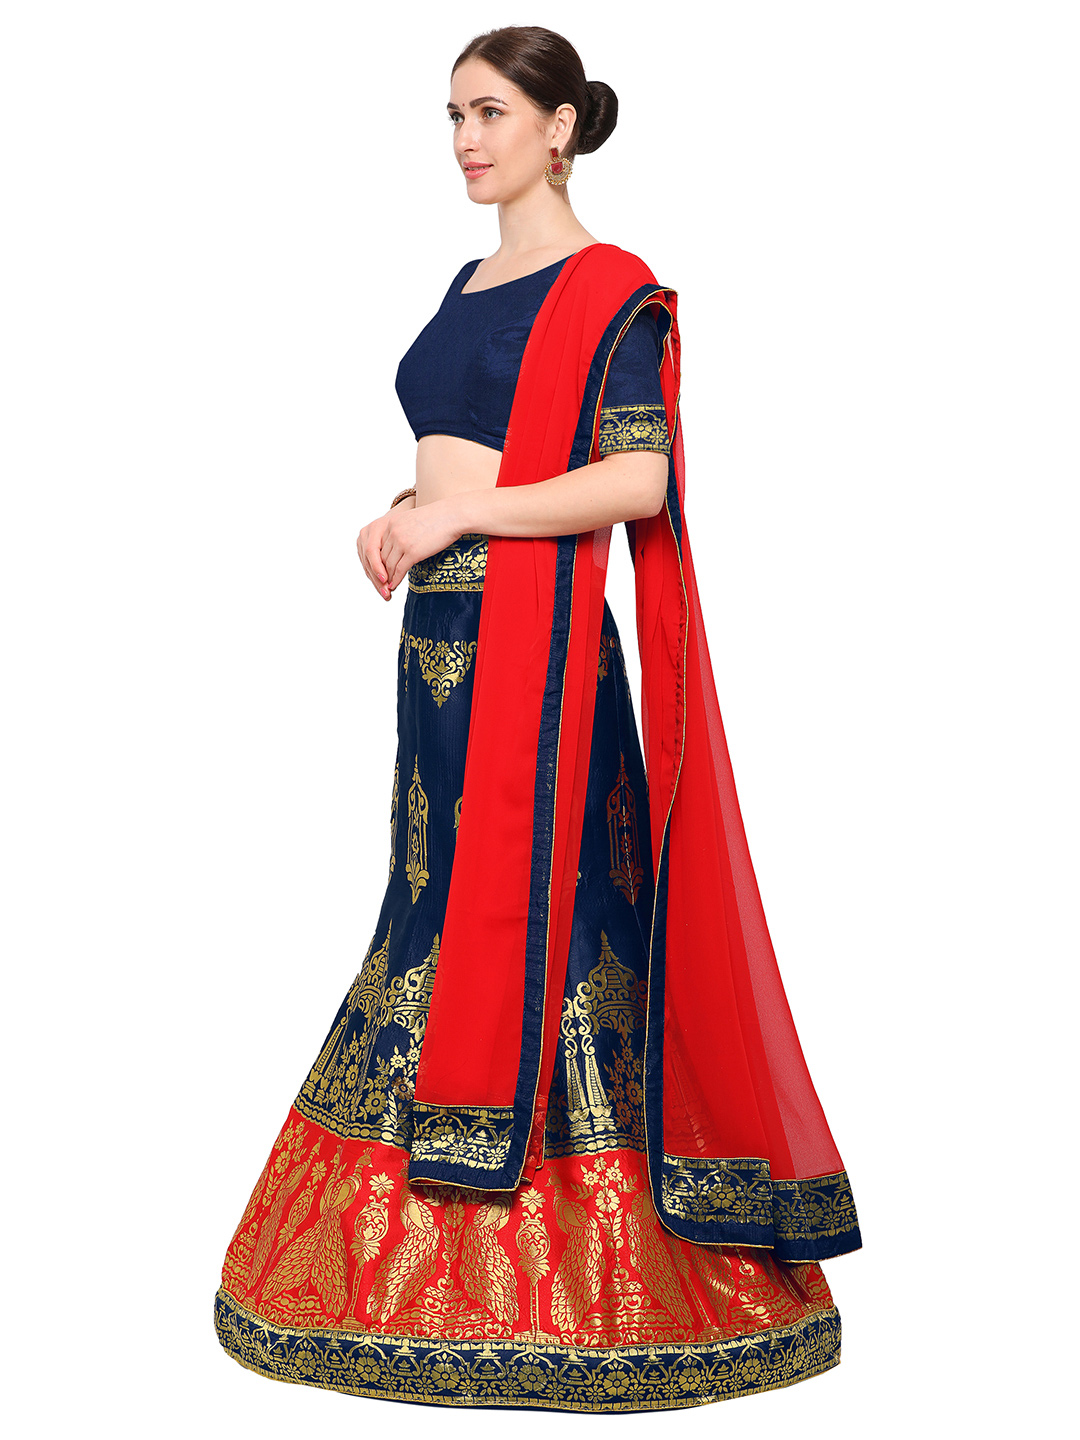 af5be4261d Buy Navy Blue-Red Colored Banarasi Work Jacquard Silk Lehenga Choli Online  India, Best Prices, Reviews - Peachmode